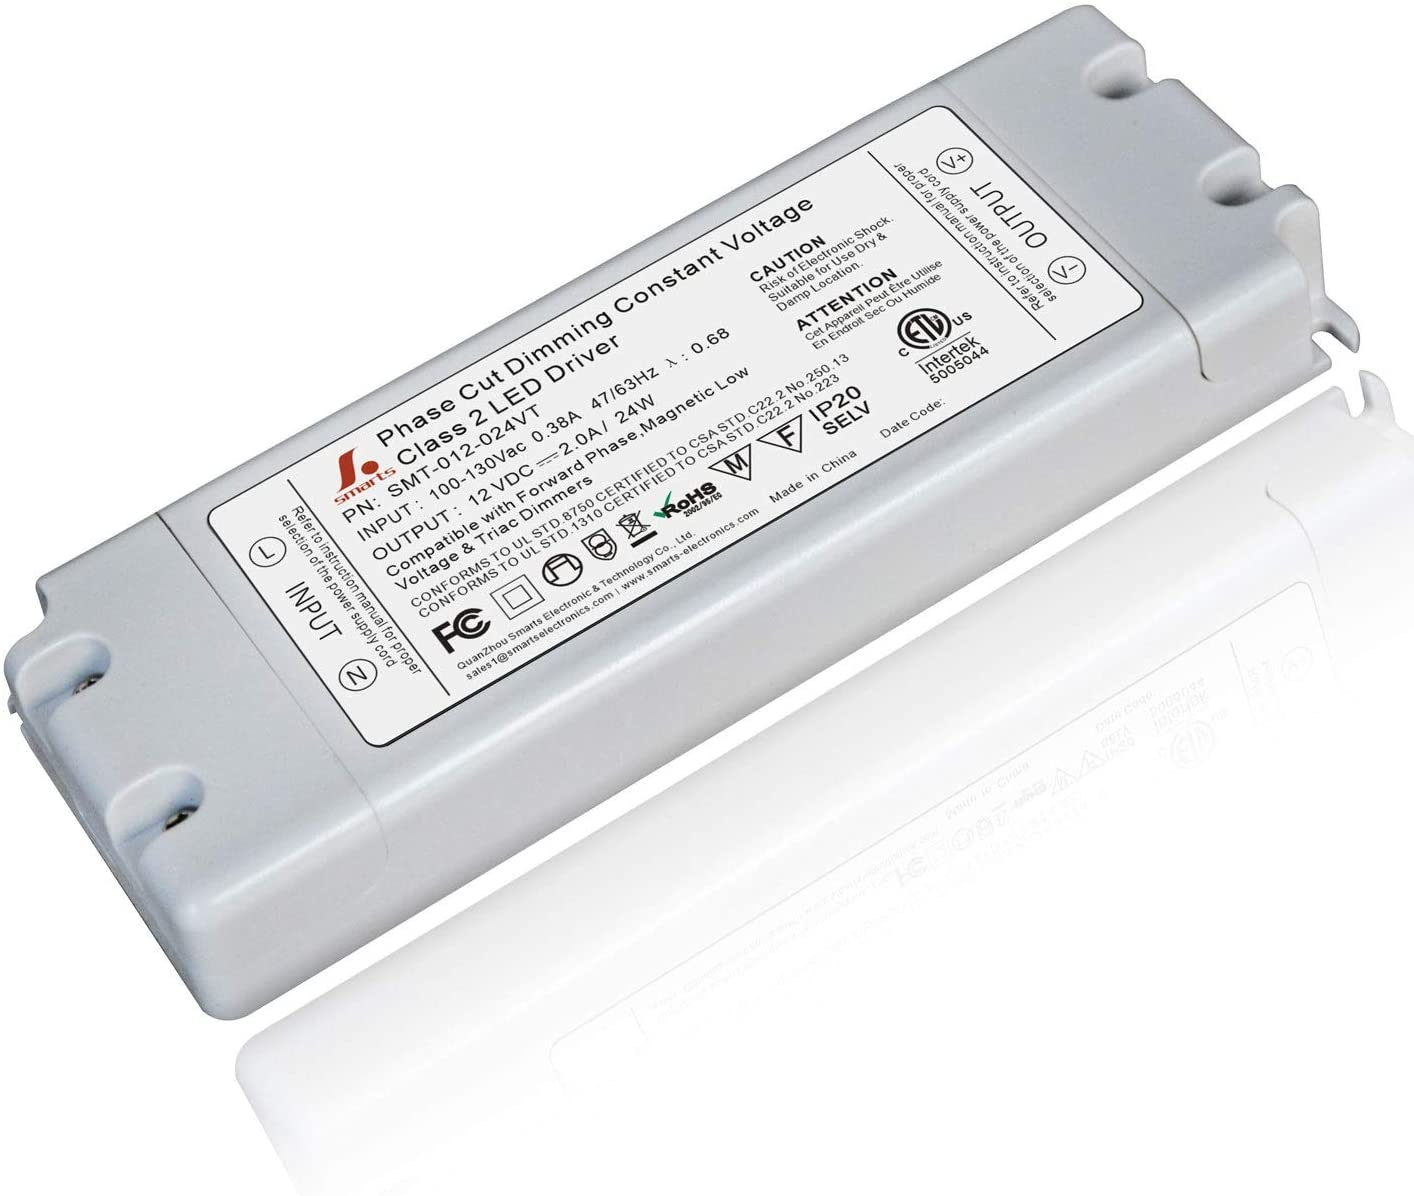 Smarts Electronics 24 Watt LED Dimmable Driver 100-130V AC-12V DC. Compatible with Lutron Dimmers and More for LED Strip Lights. Constant Voltage